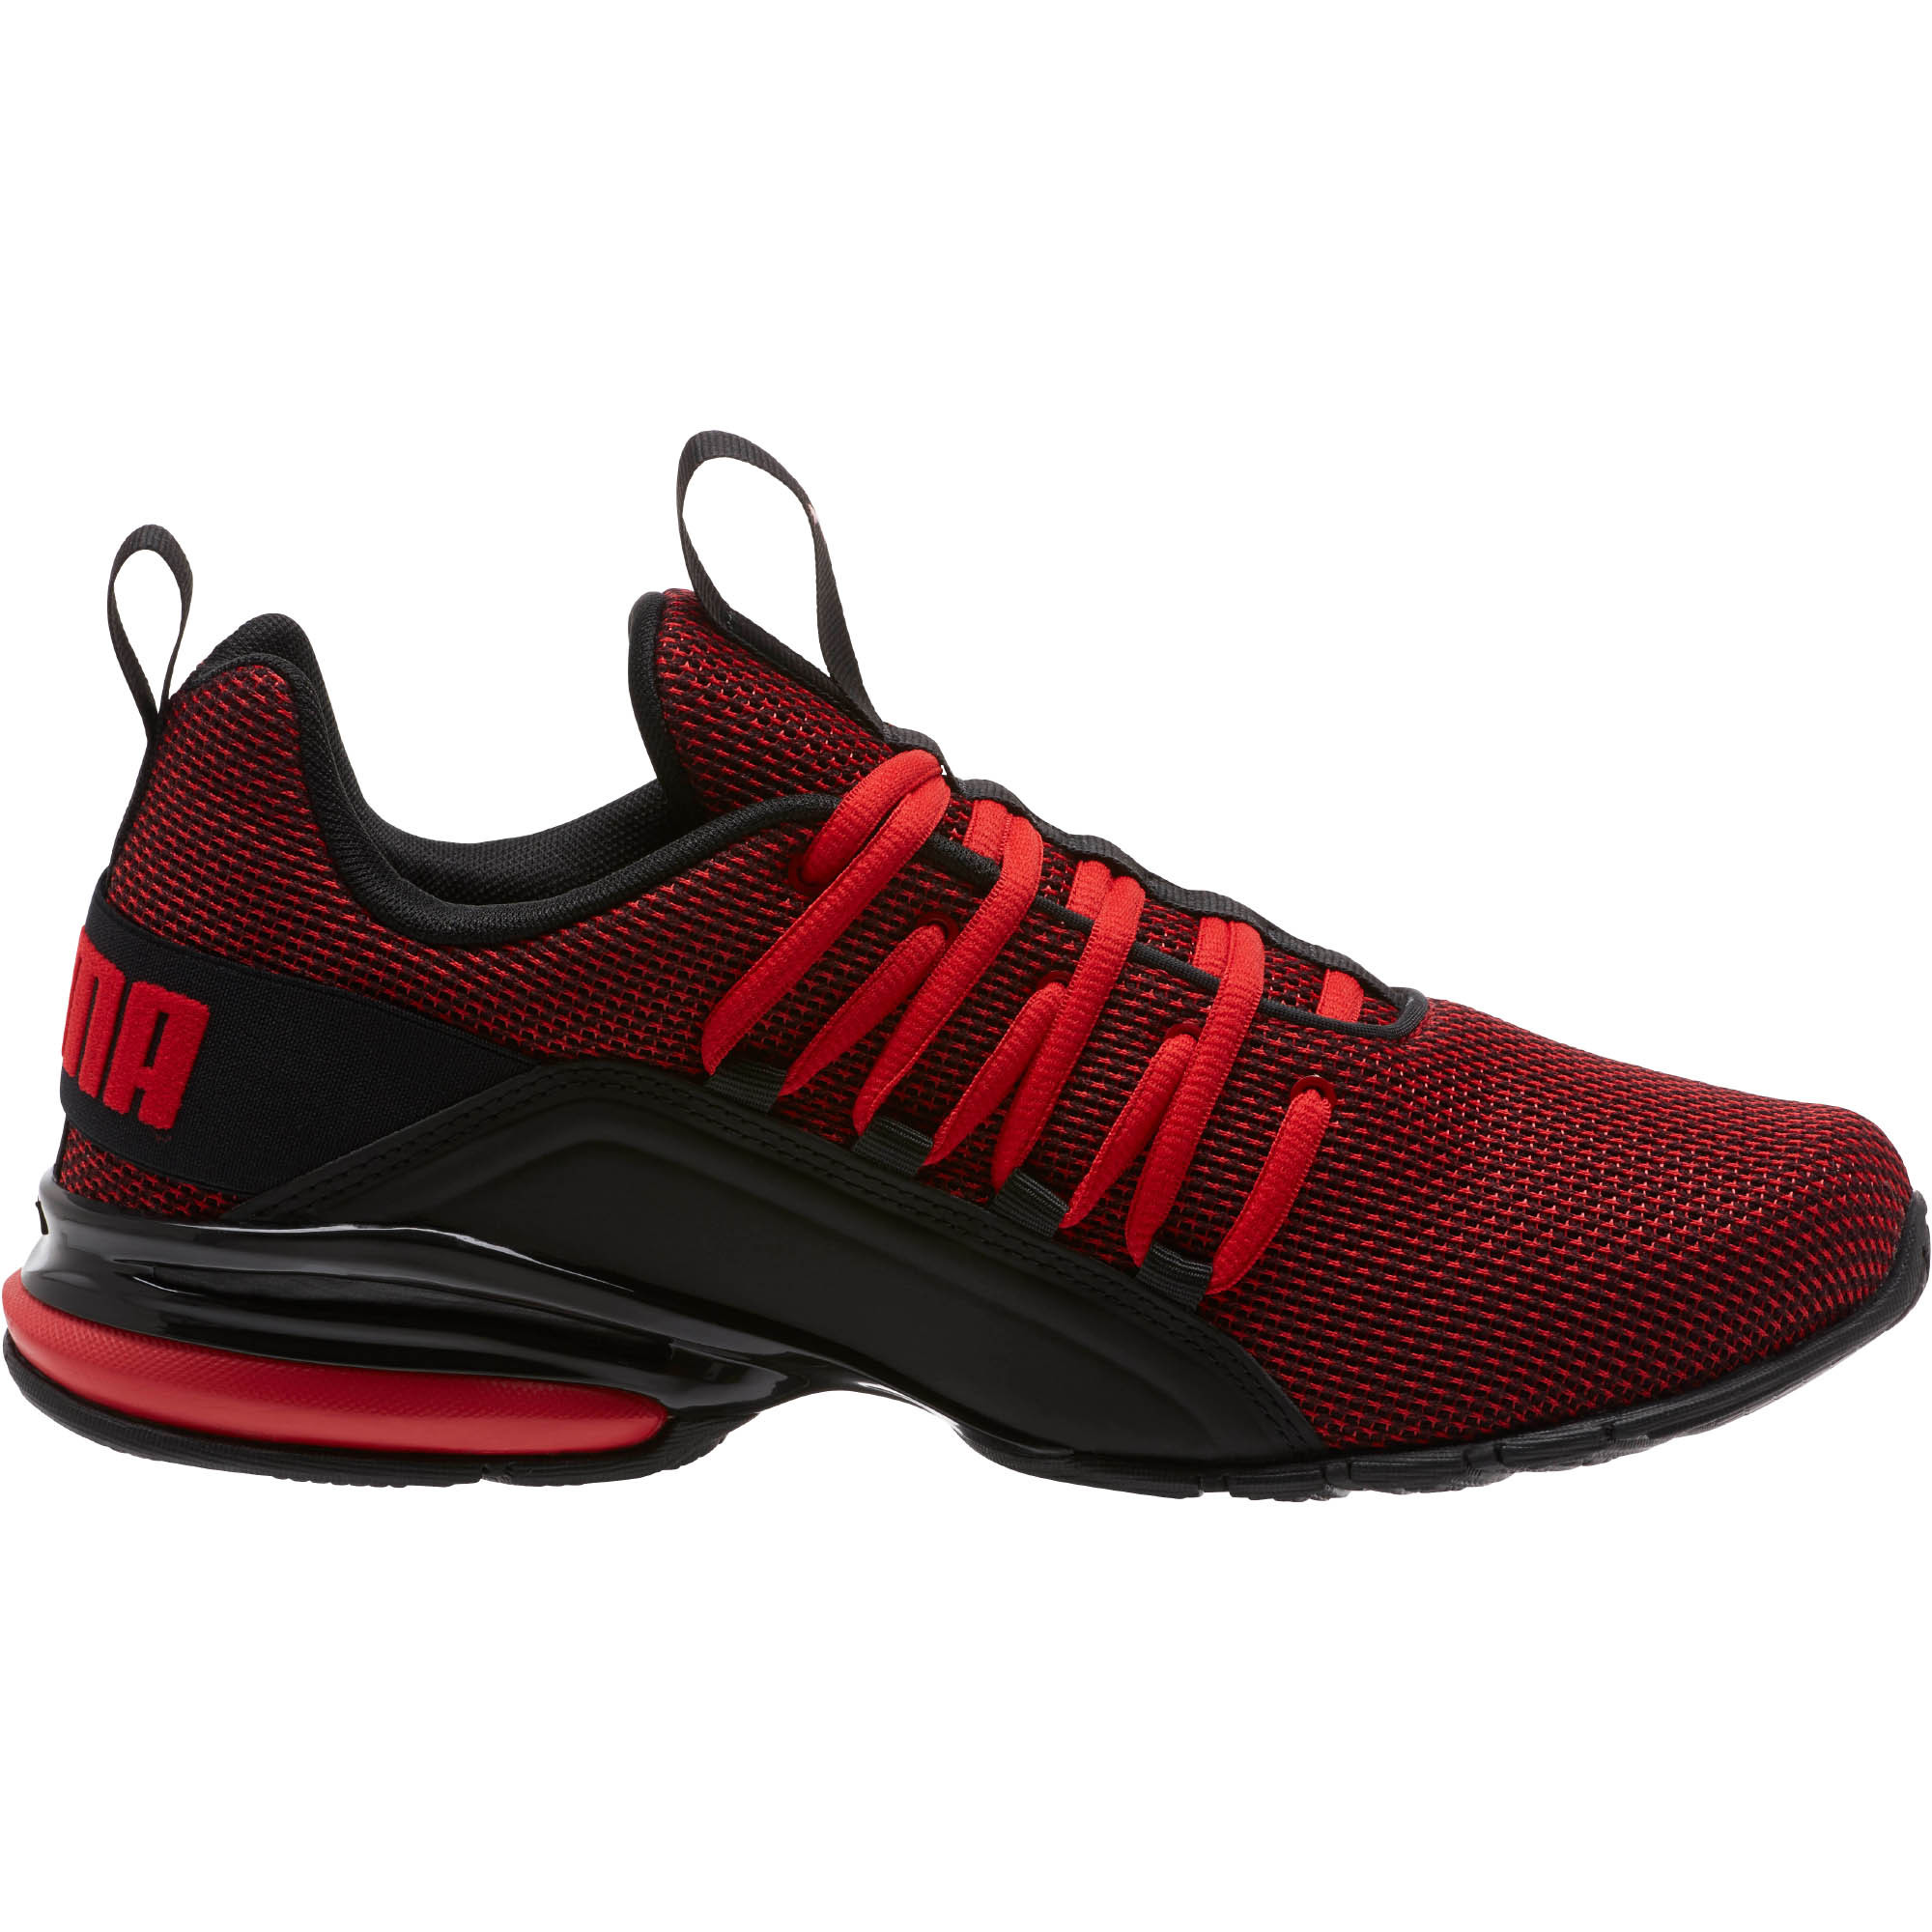 PUMA-Men-039-s-Axelion-Mesh-Training-Shoes thumbnail 5